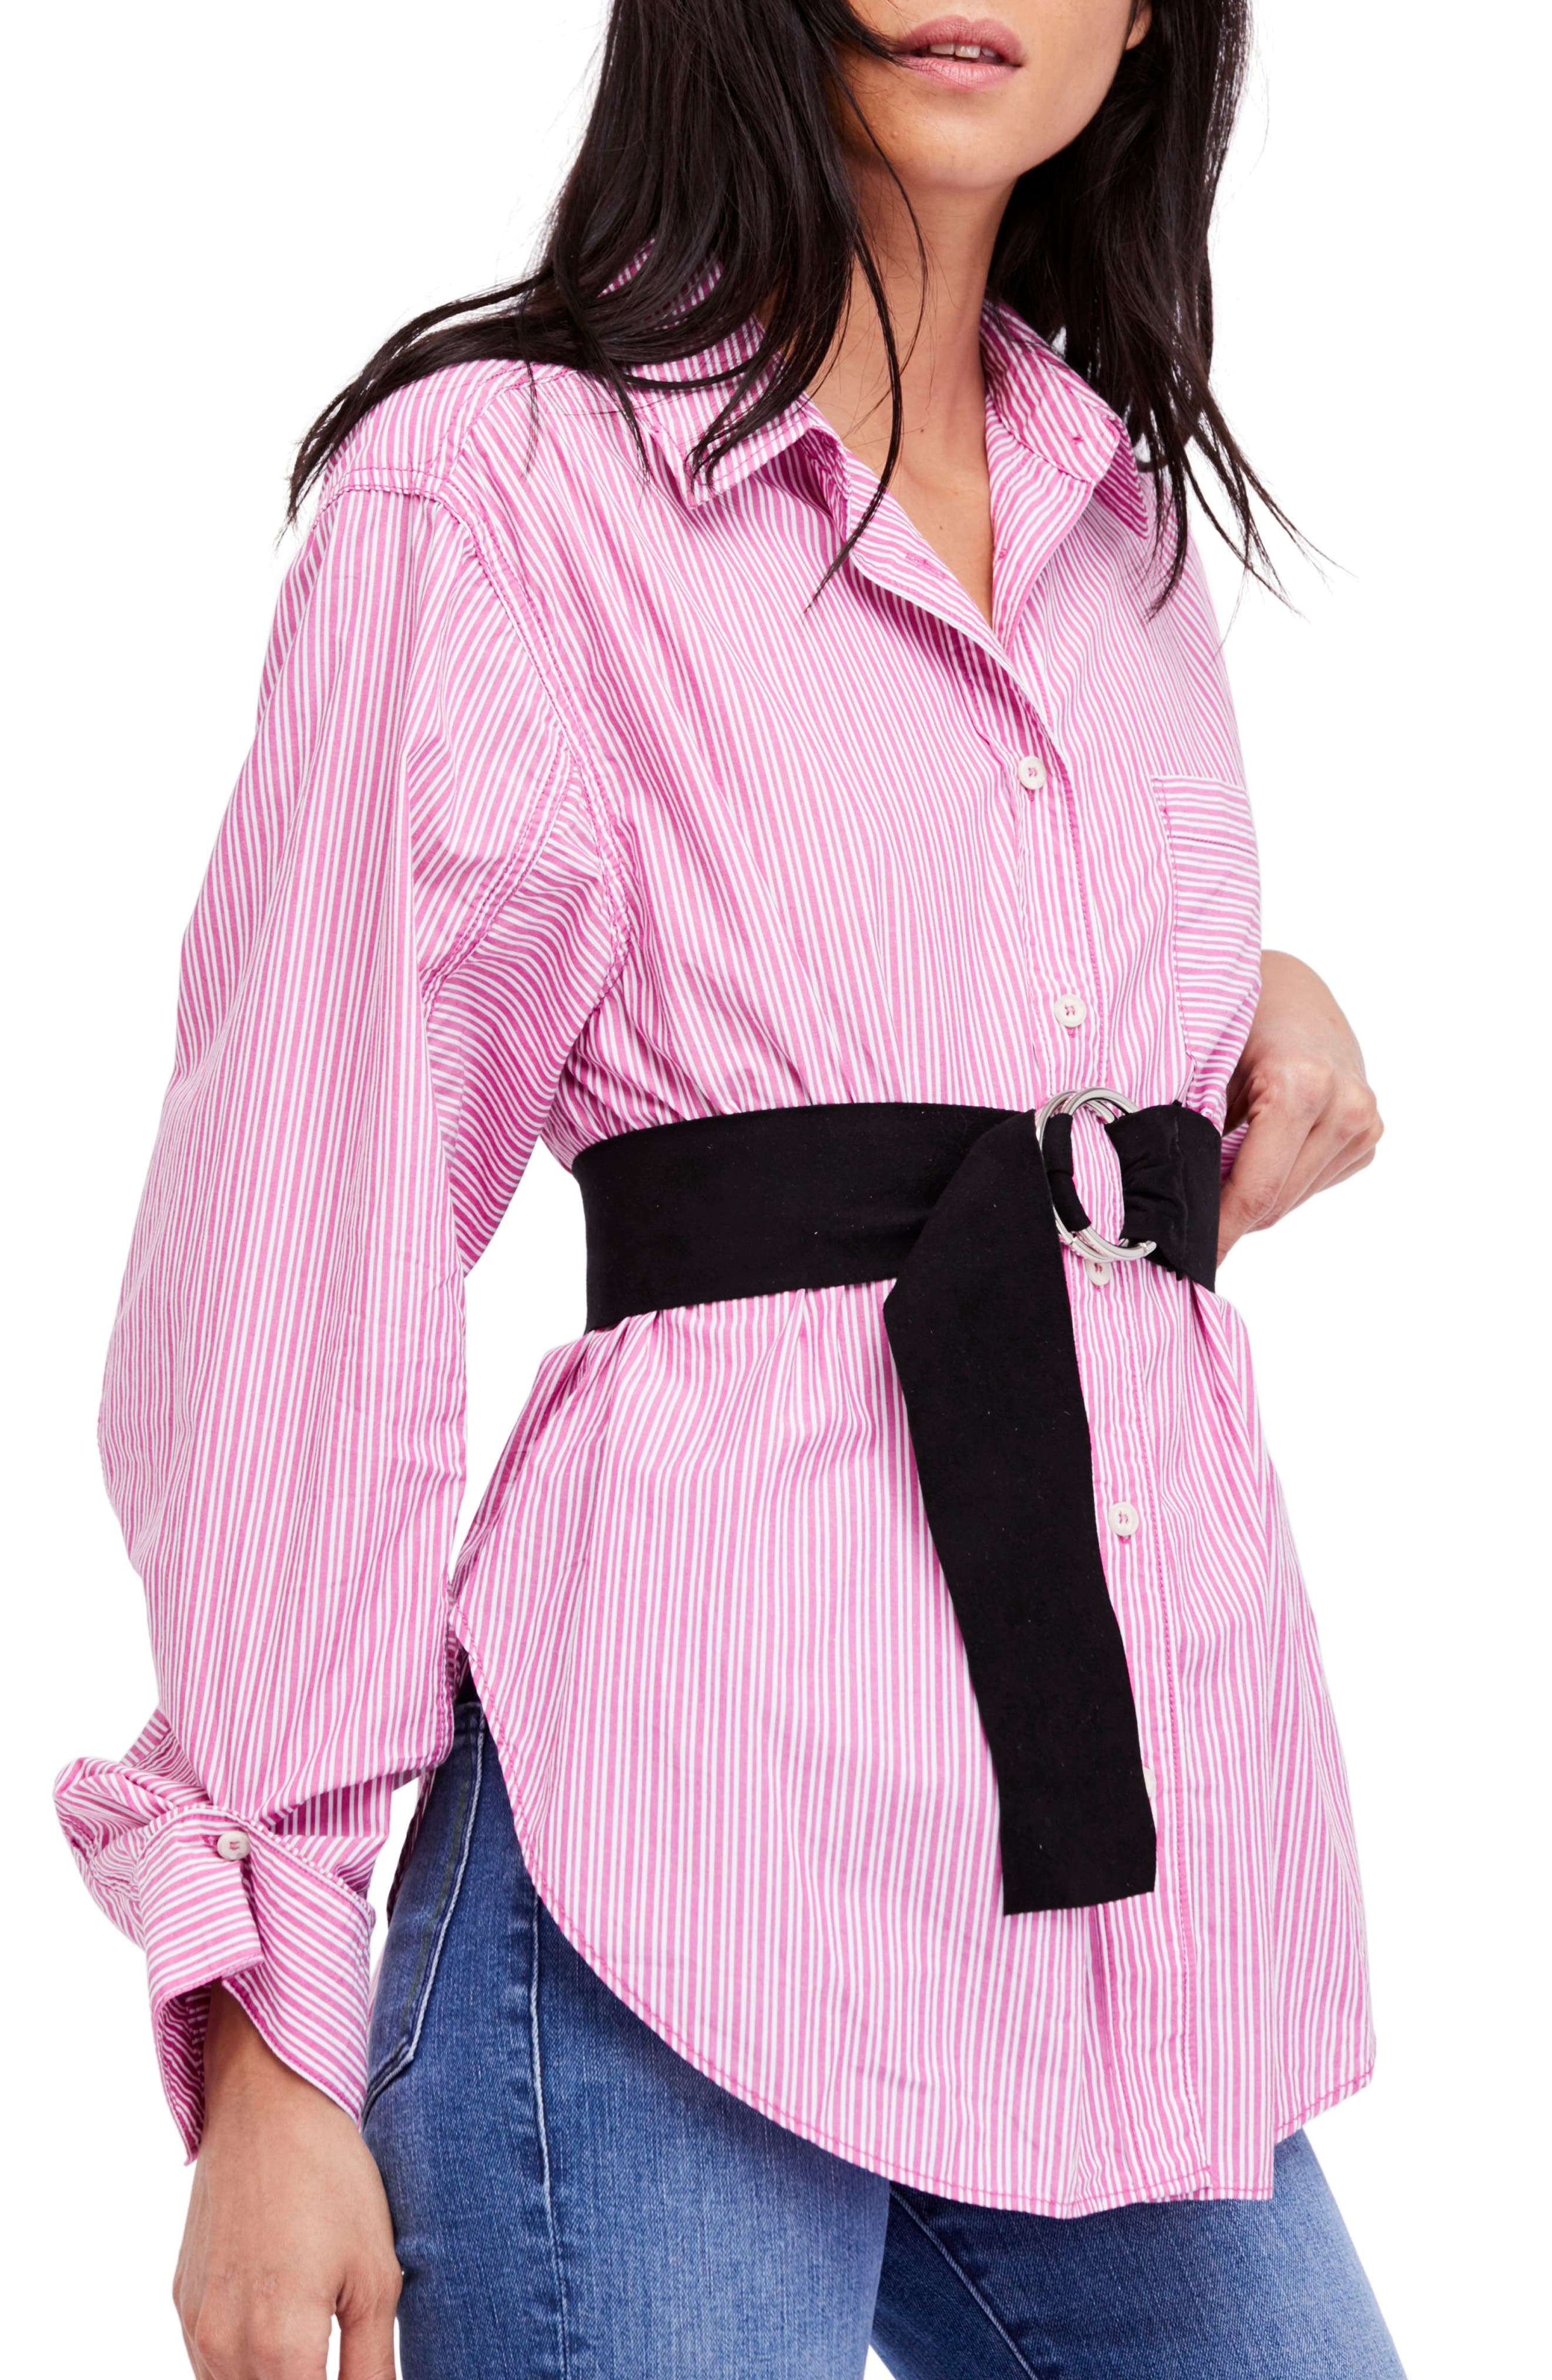 Tie It in a Bow Shirt,                             Main thumbnail 1, color,                             Violet